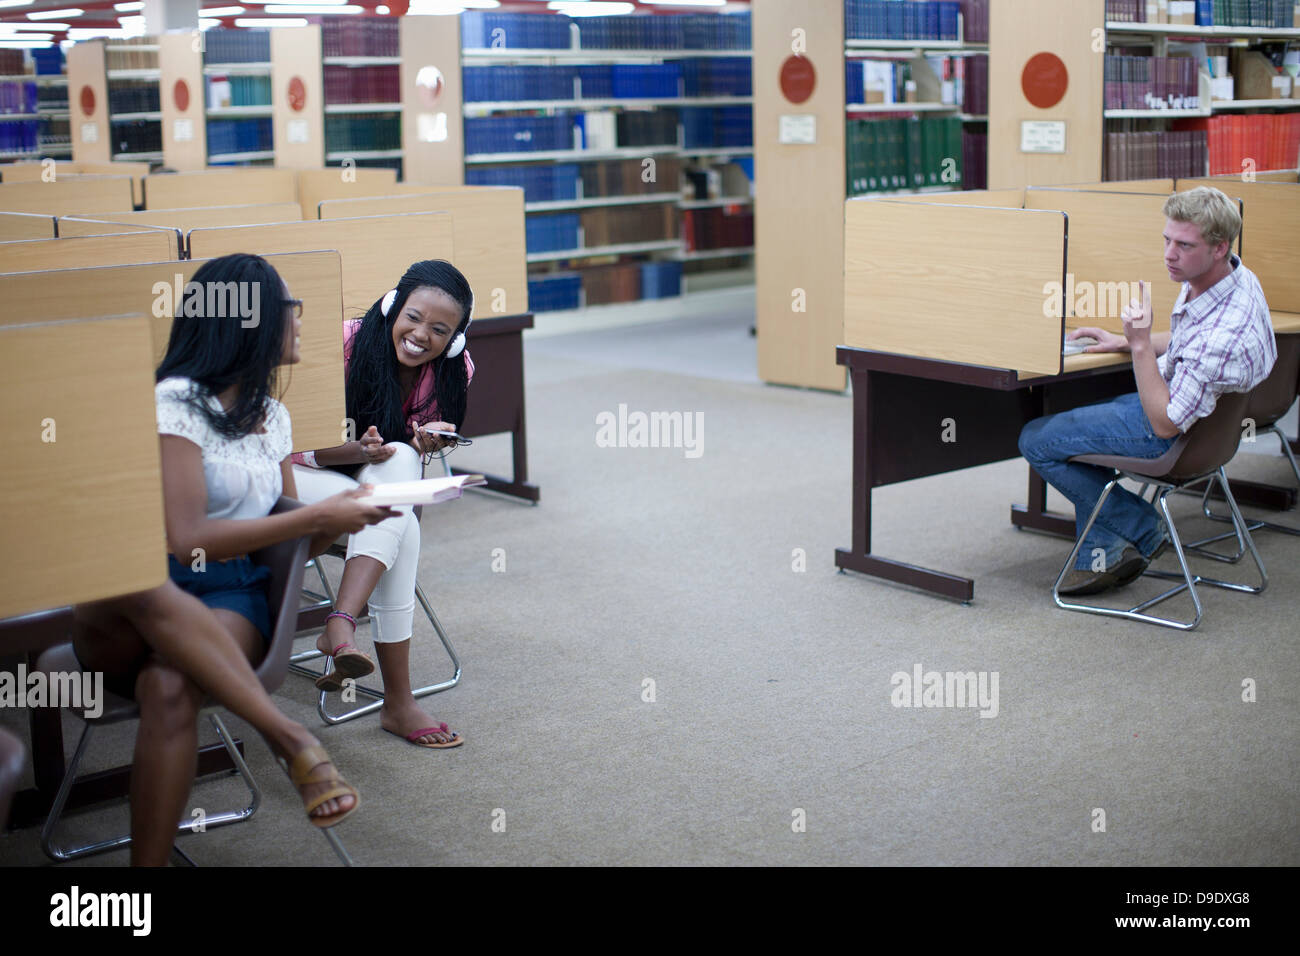 Student in library cubicles - Stock Image